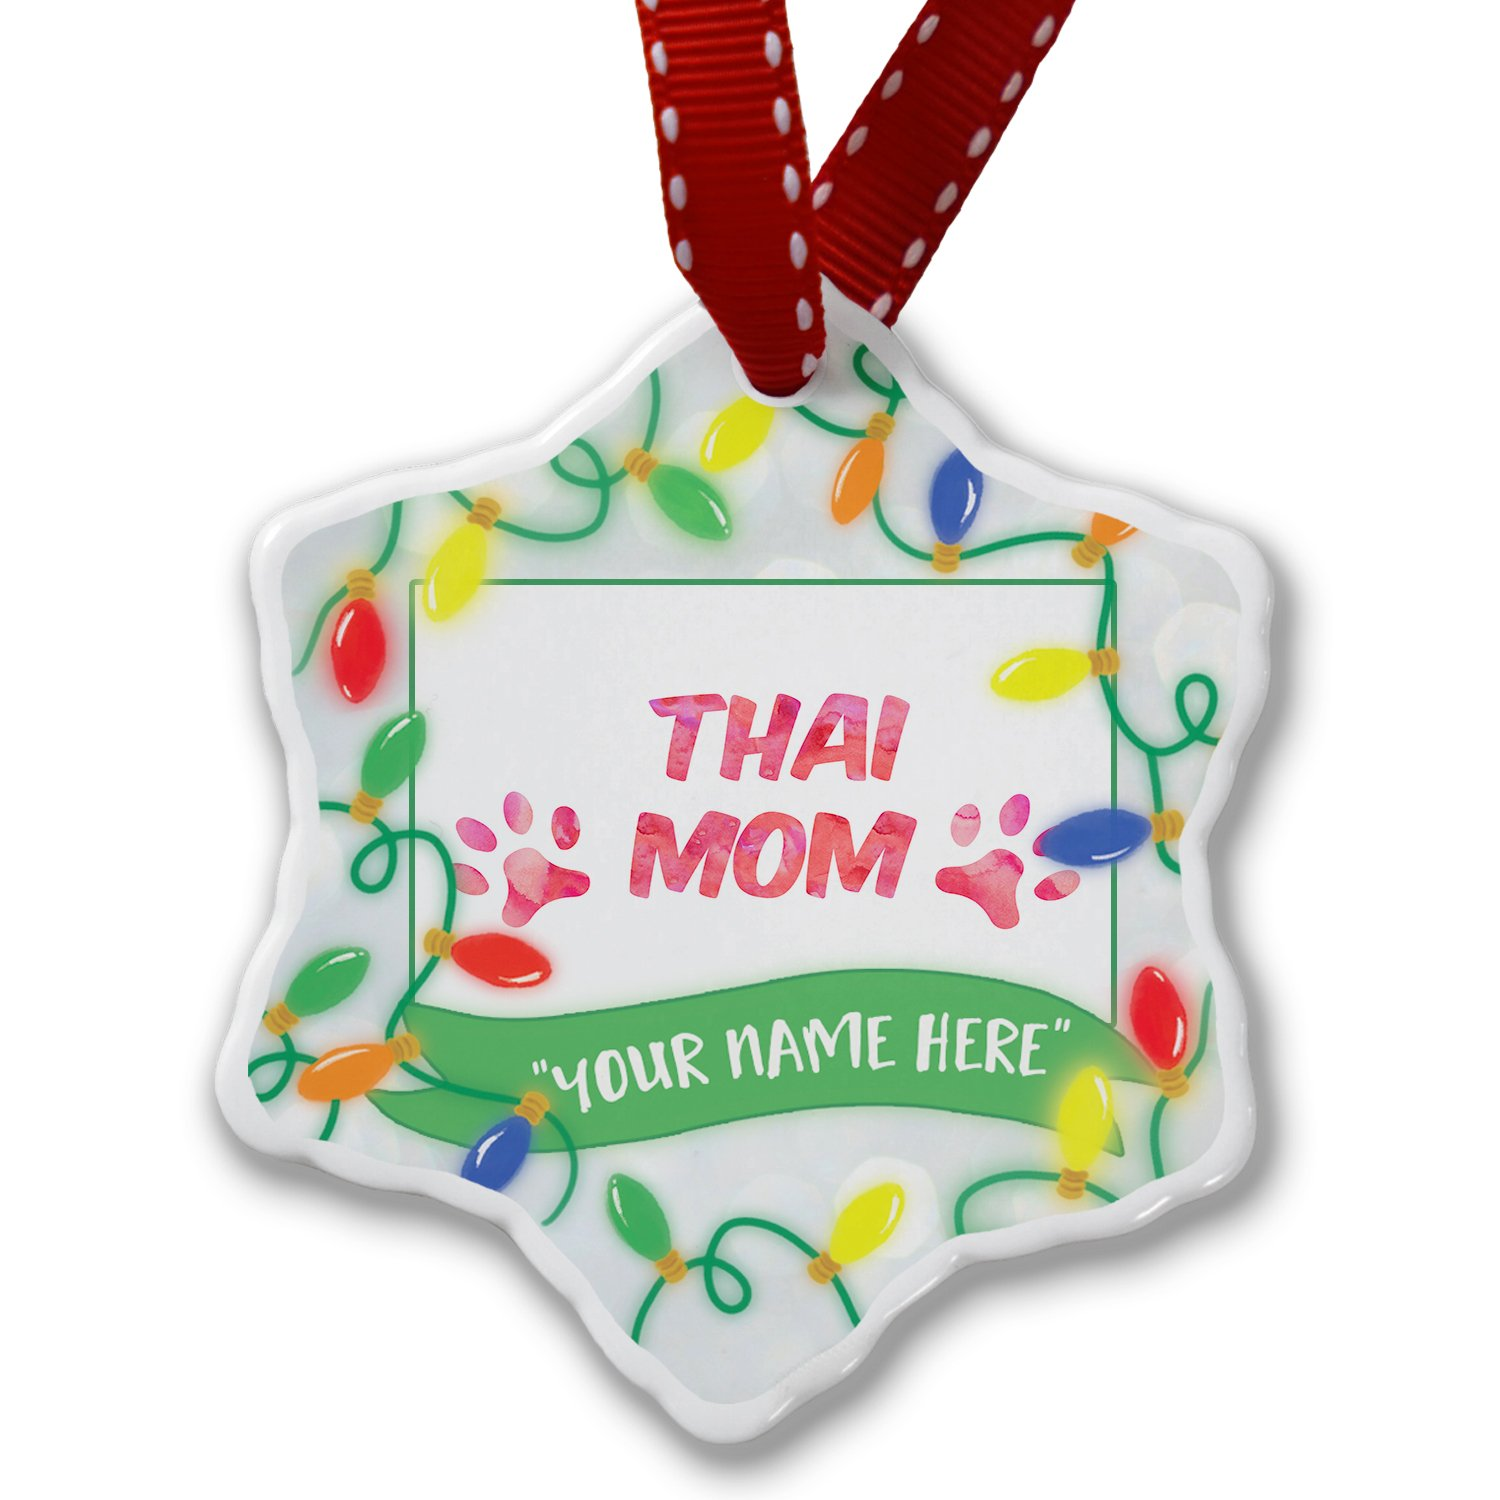 Personalized Name Christmas Ornament, Dog & Cat Mom Thai NEONBLOND